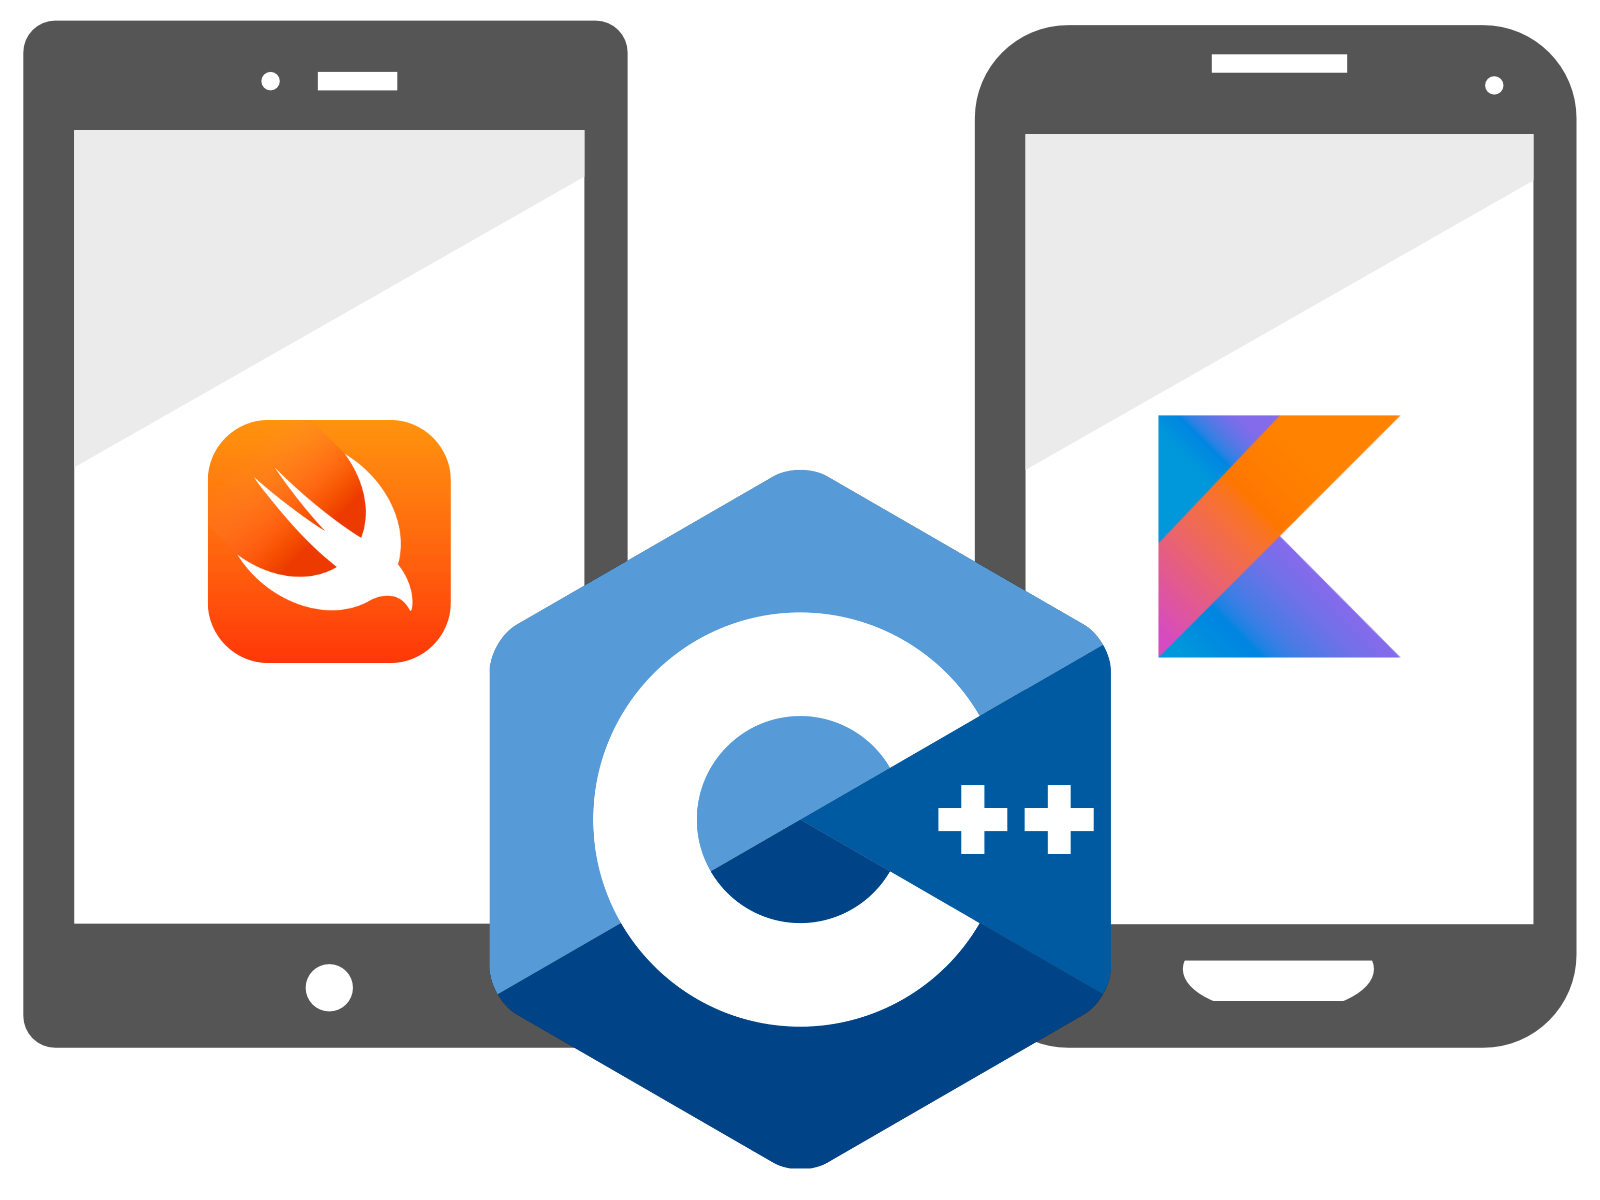 How to build a shared C++ library for iOS and Android